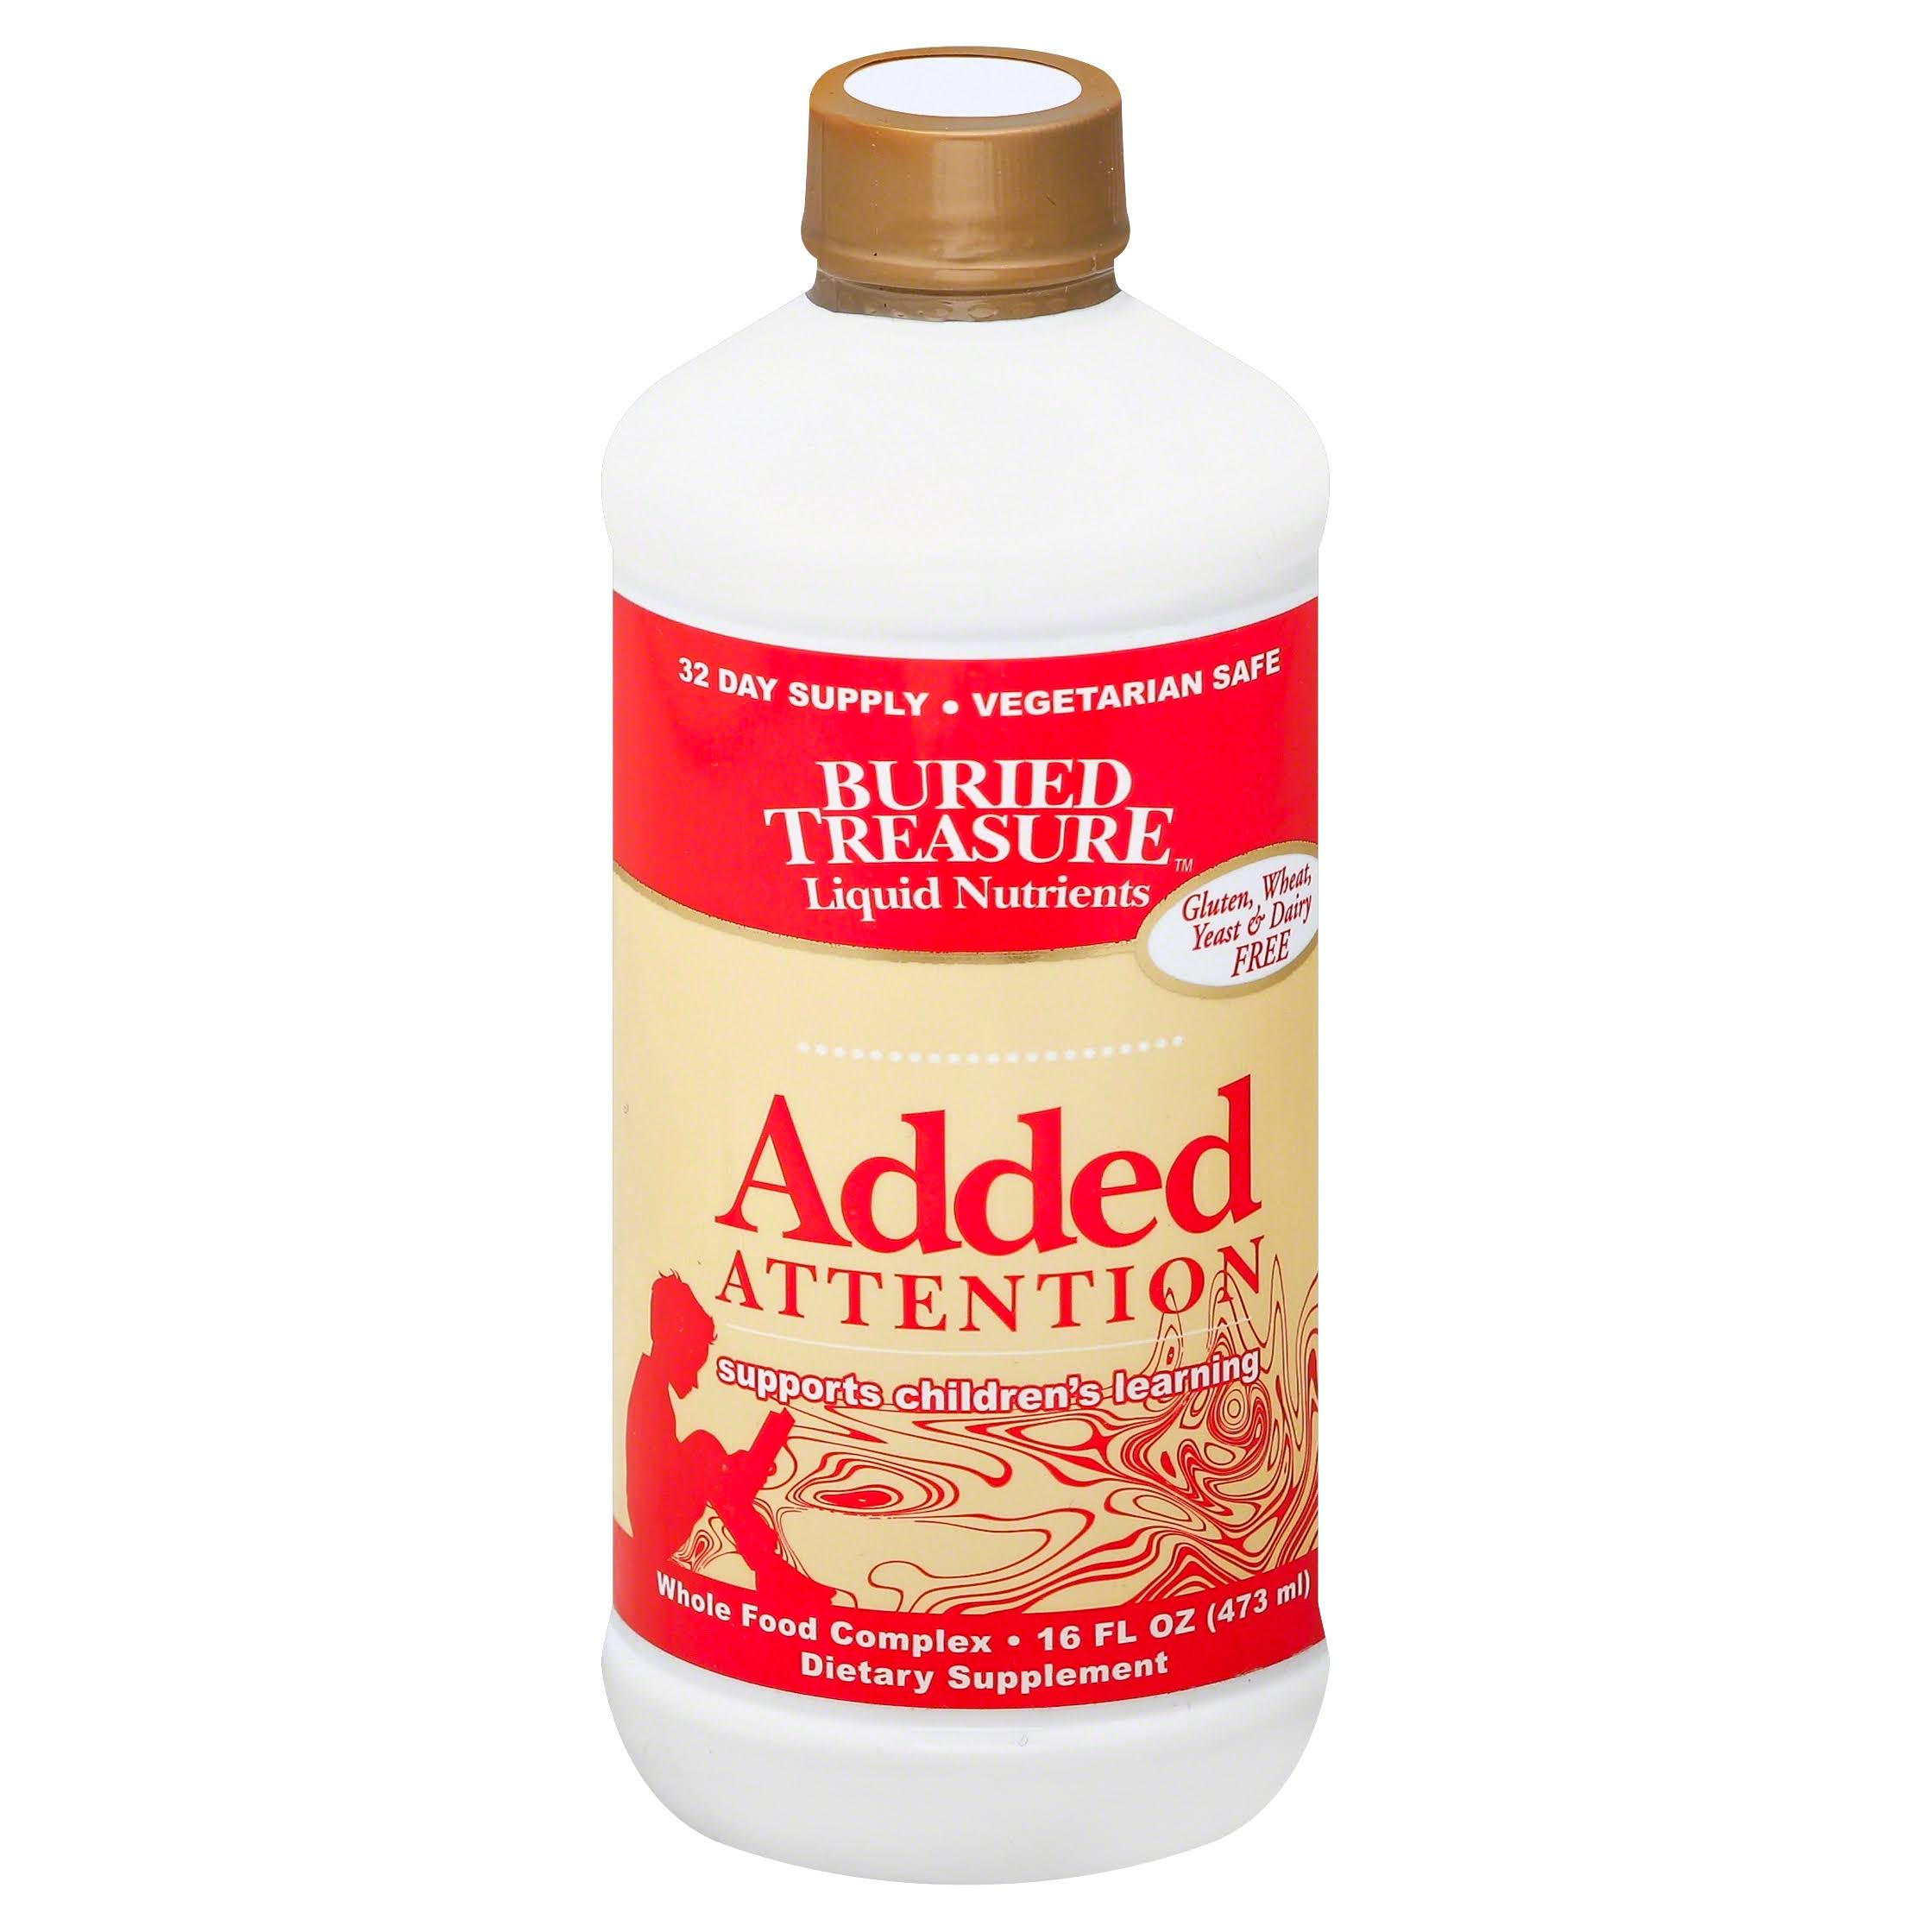 Buried Treasure Added Attention For Children - 473ml